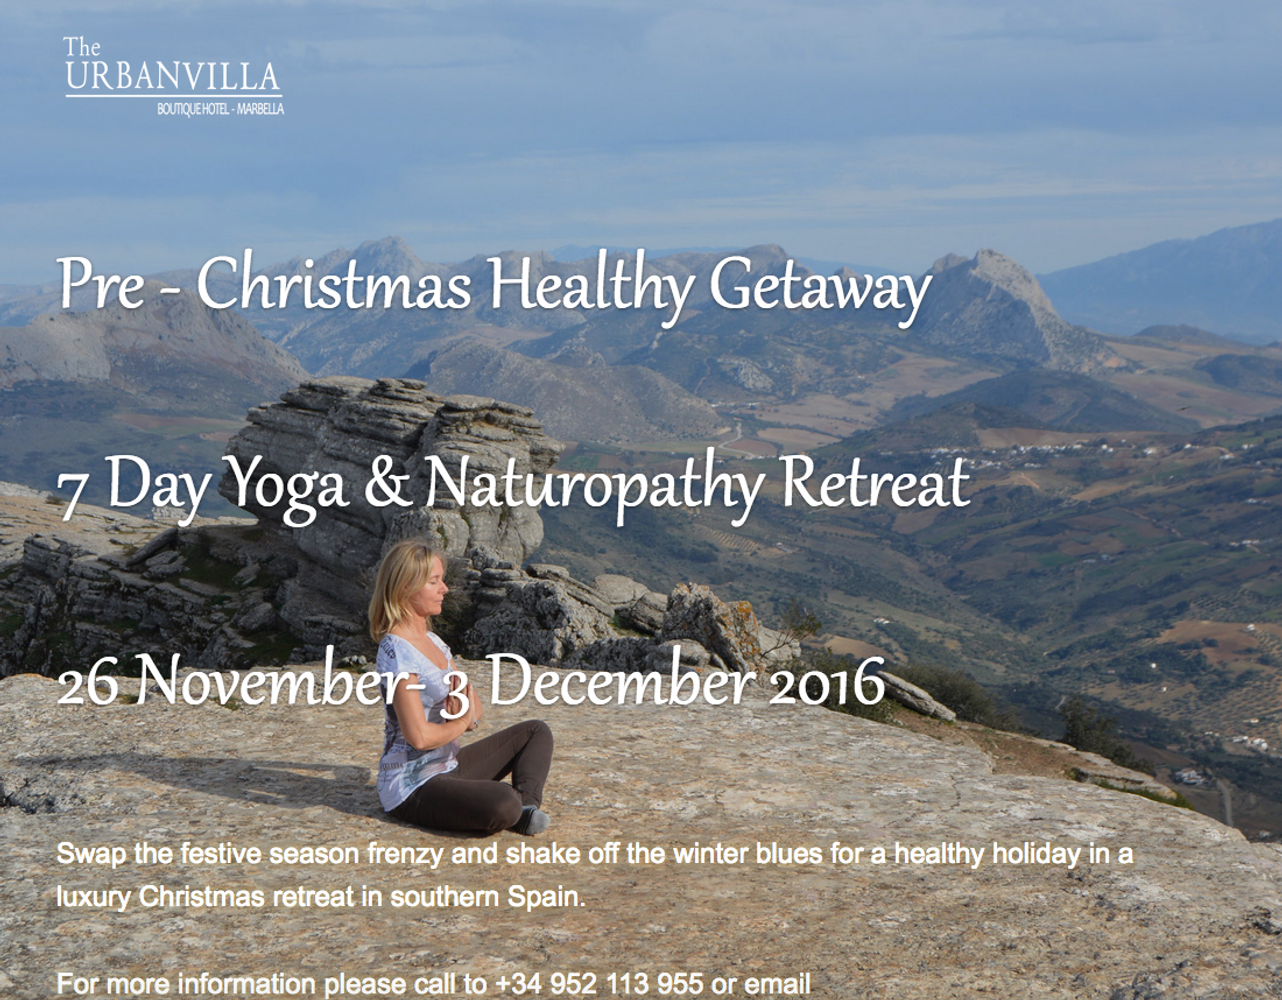 7 Day Yoga & Naturopathy Retreat